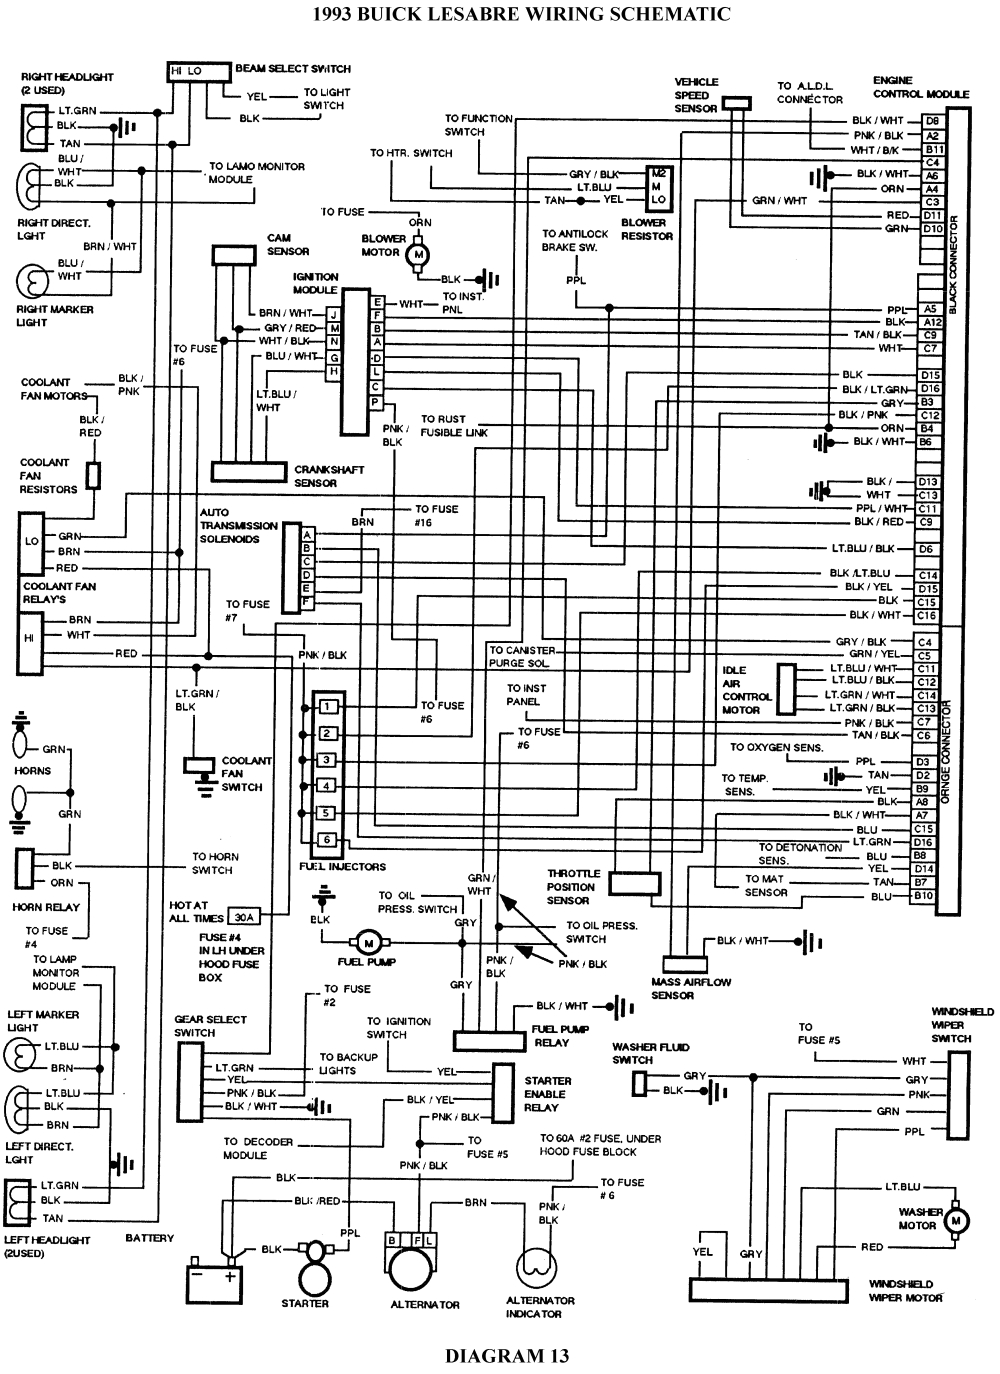 buick lesabre wiring schematic click image to see an enlarged view fig